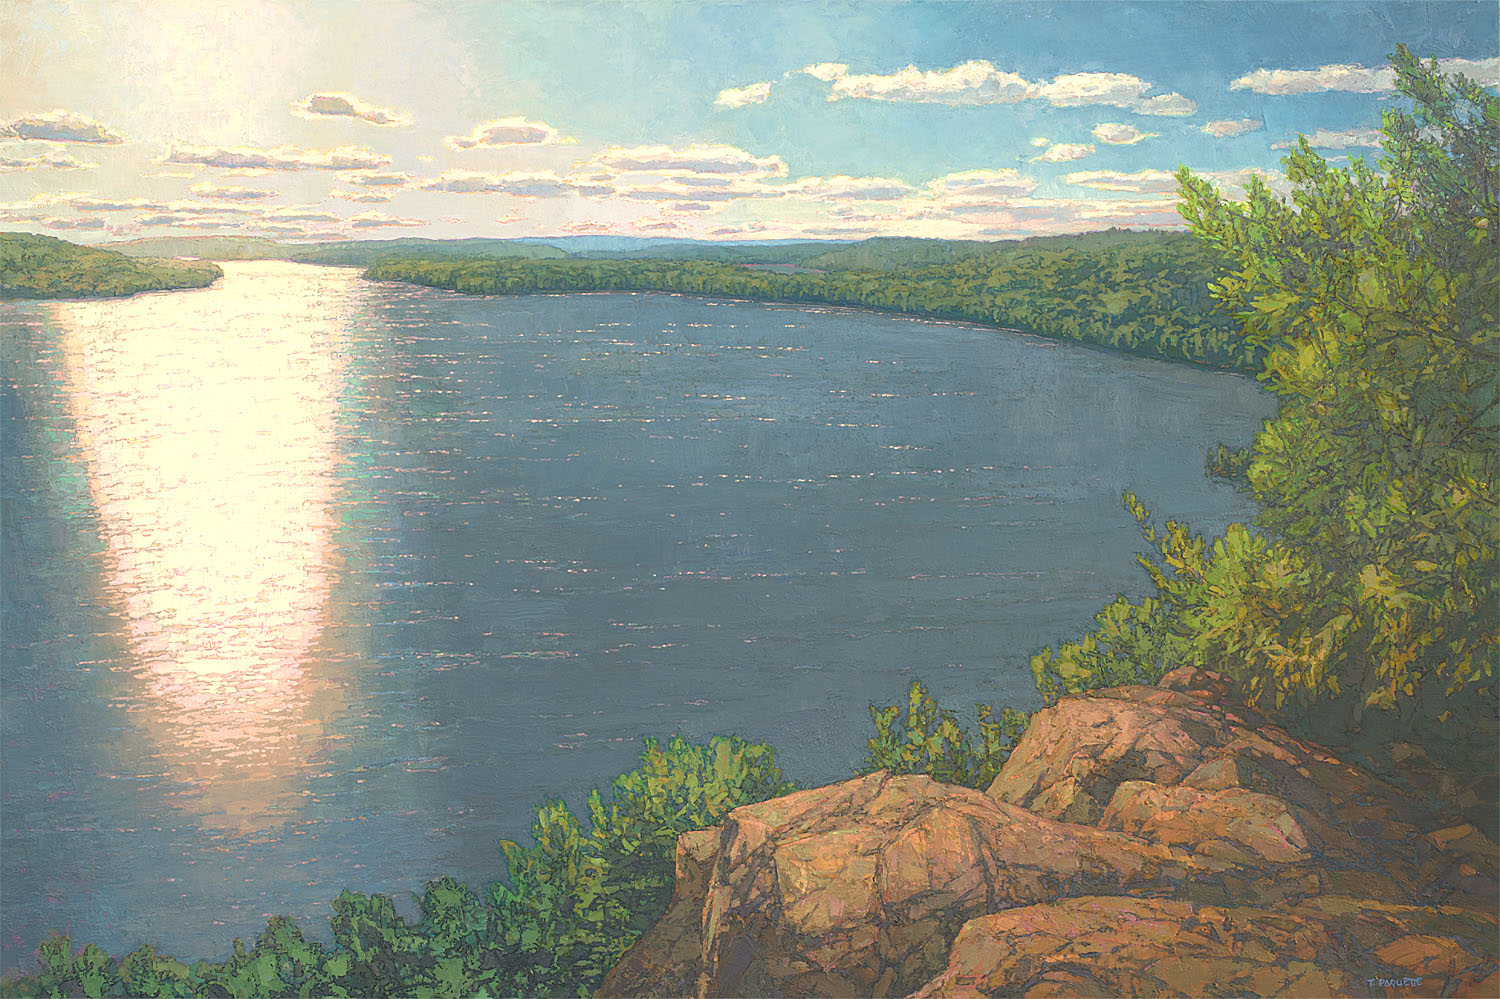 Honeymoon Lake overlook, contemporary landscape oil painting by Thomas Paquette